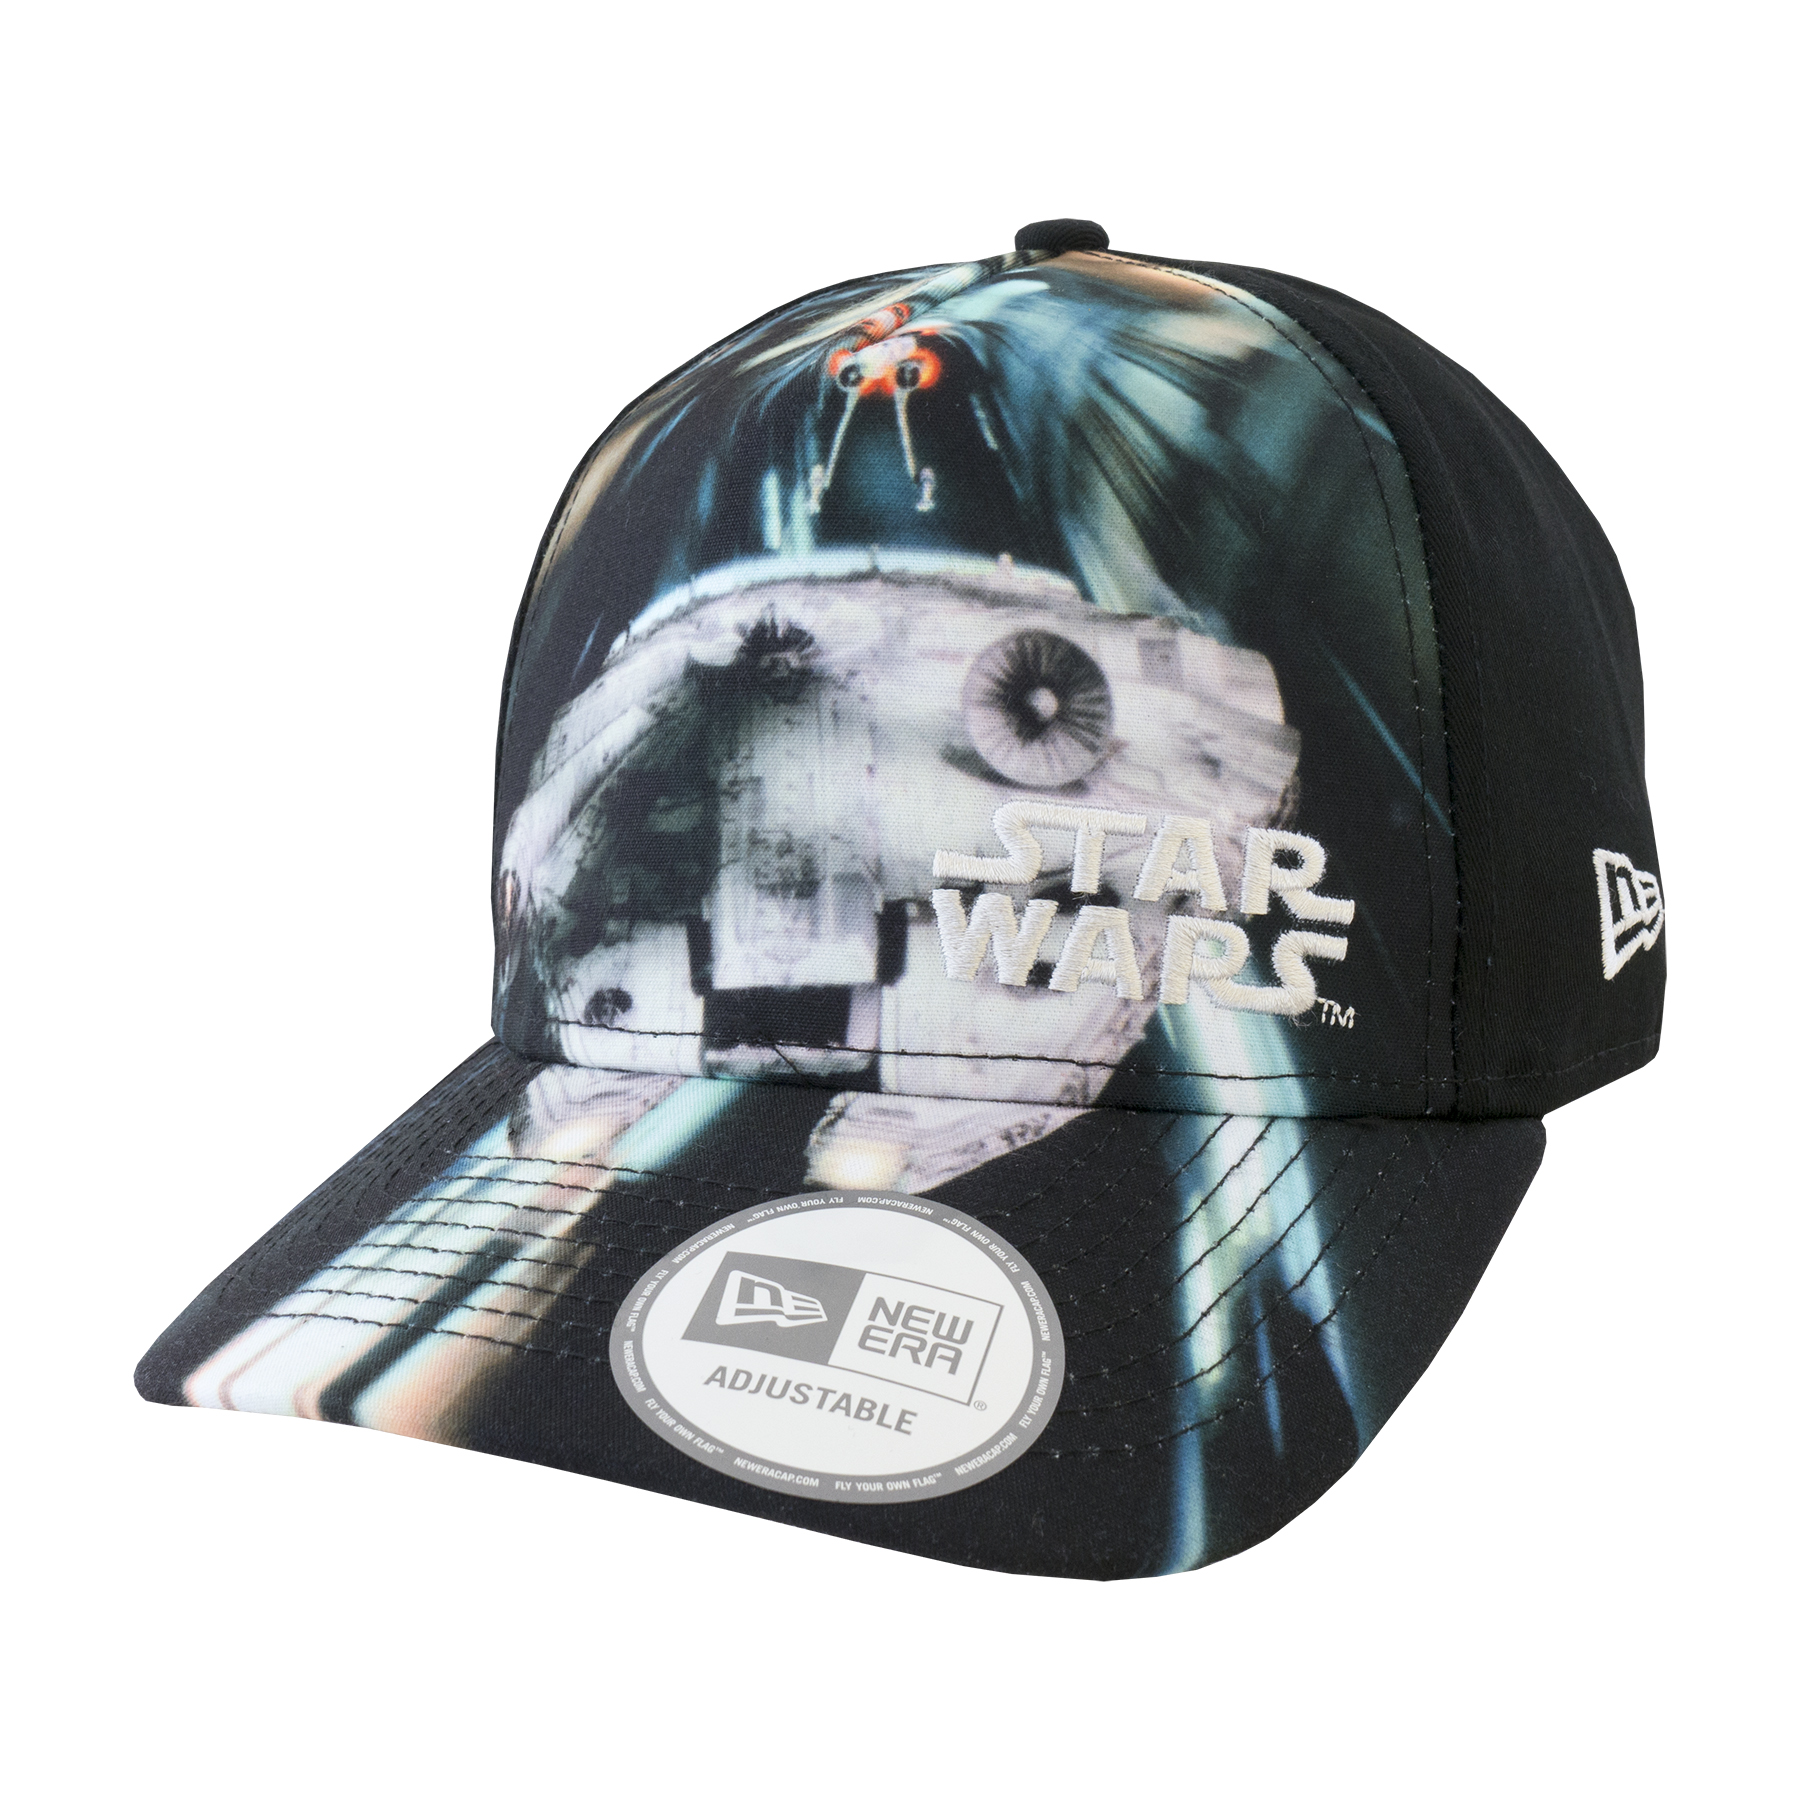 Details about New Era Star Wars Millennium Falcon Graphic Trucker Snapback  Baseball Cap rrp£20 01adf5ef31